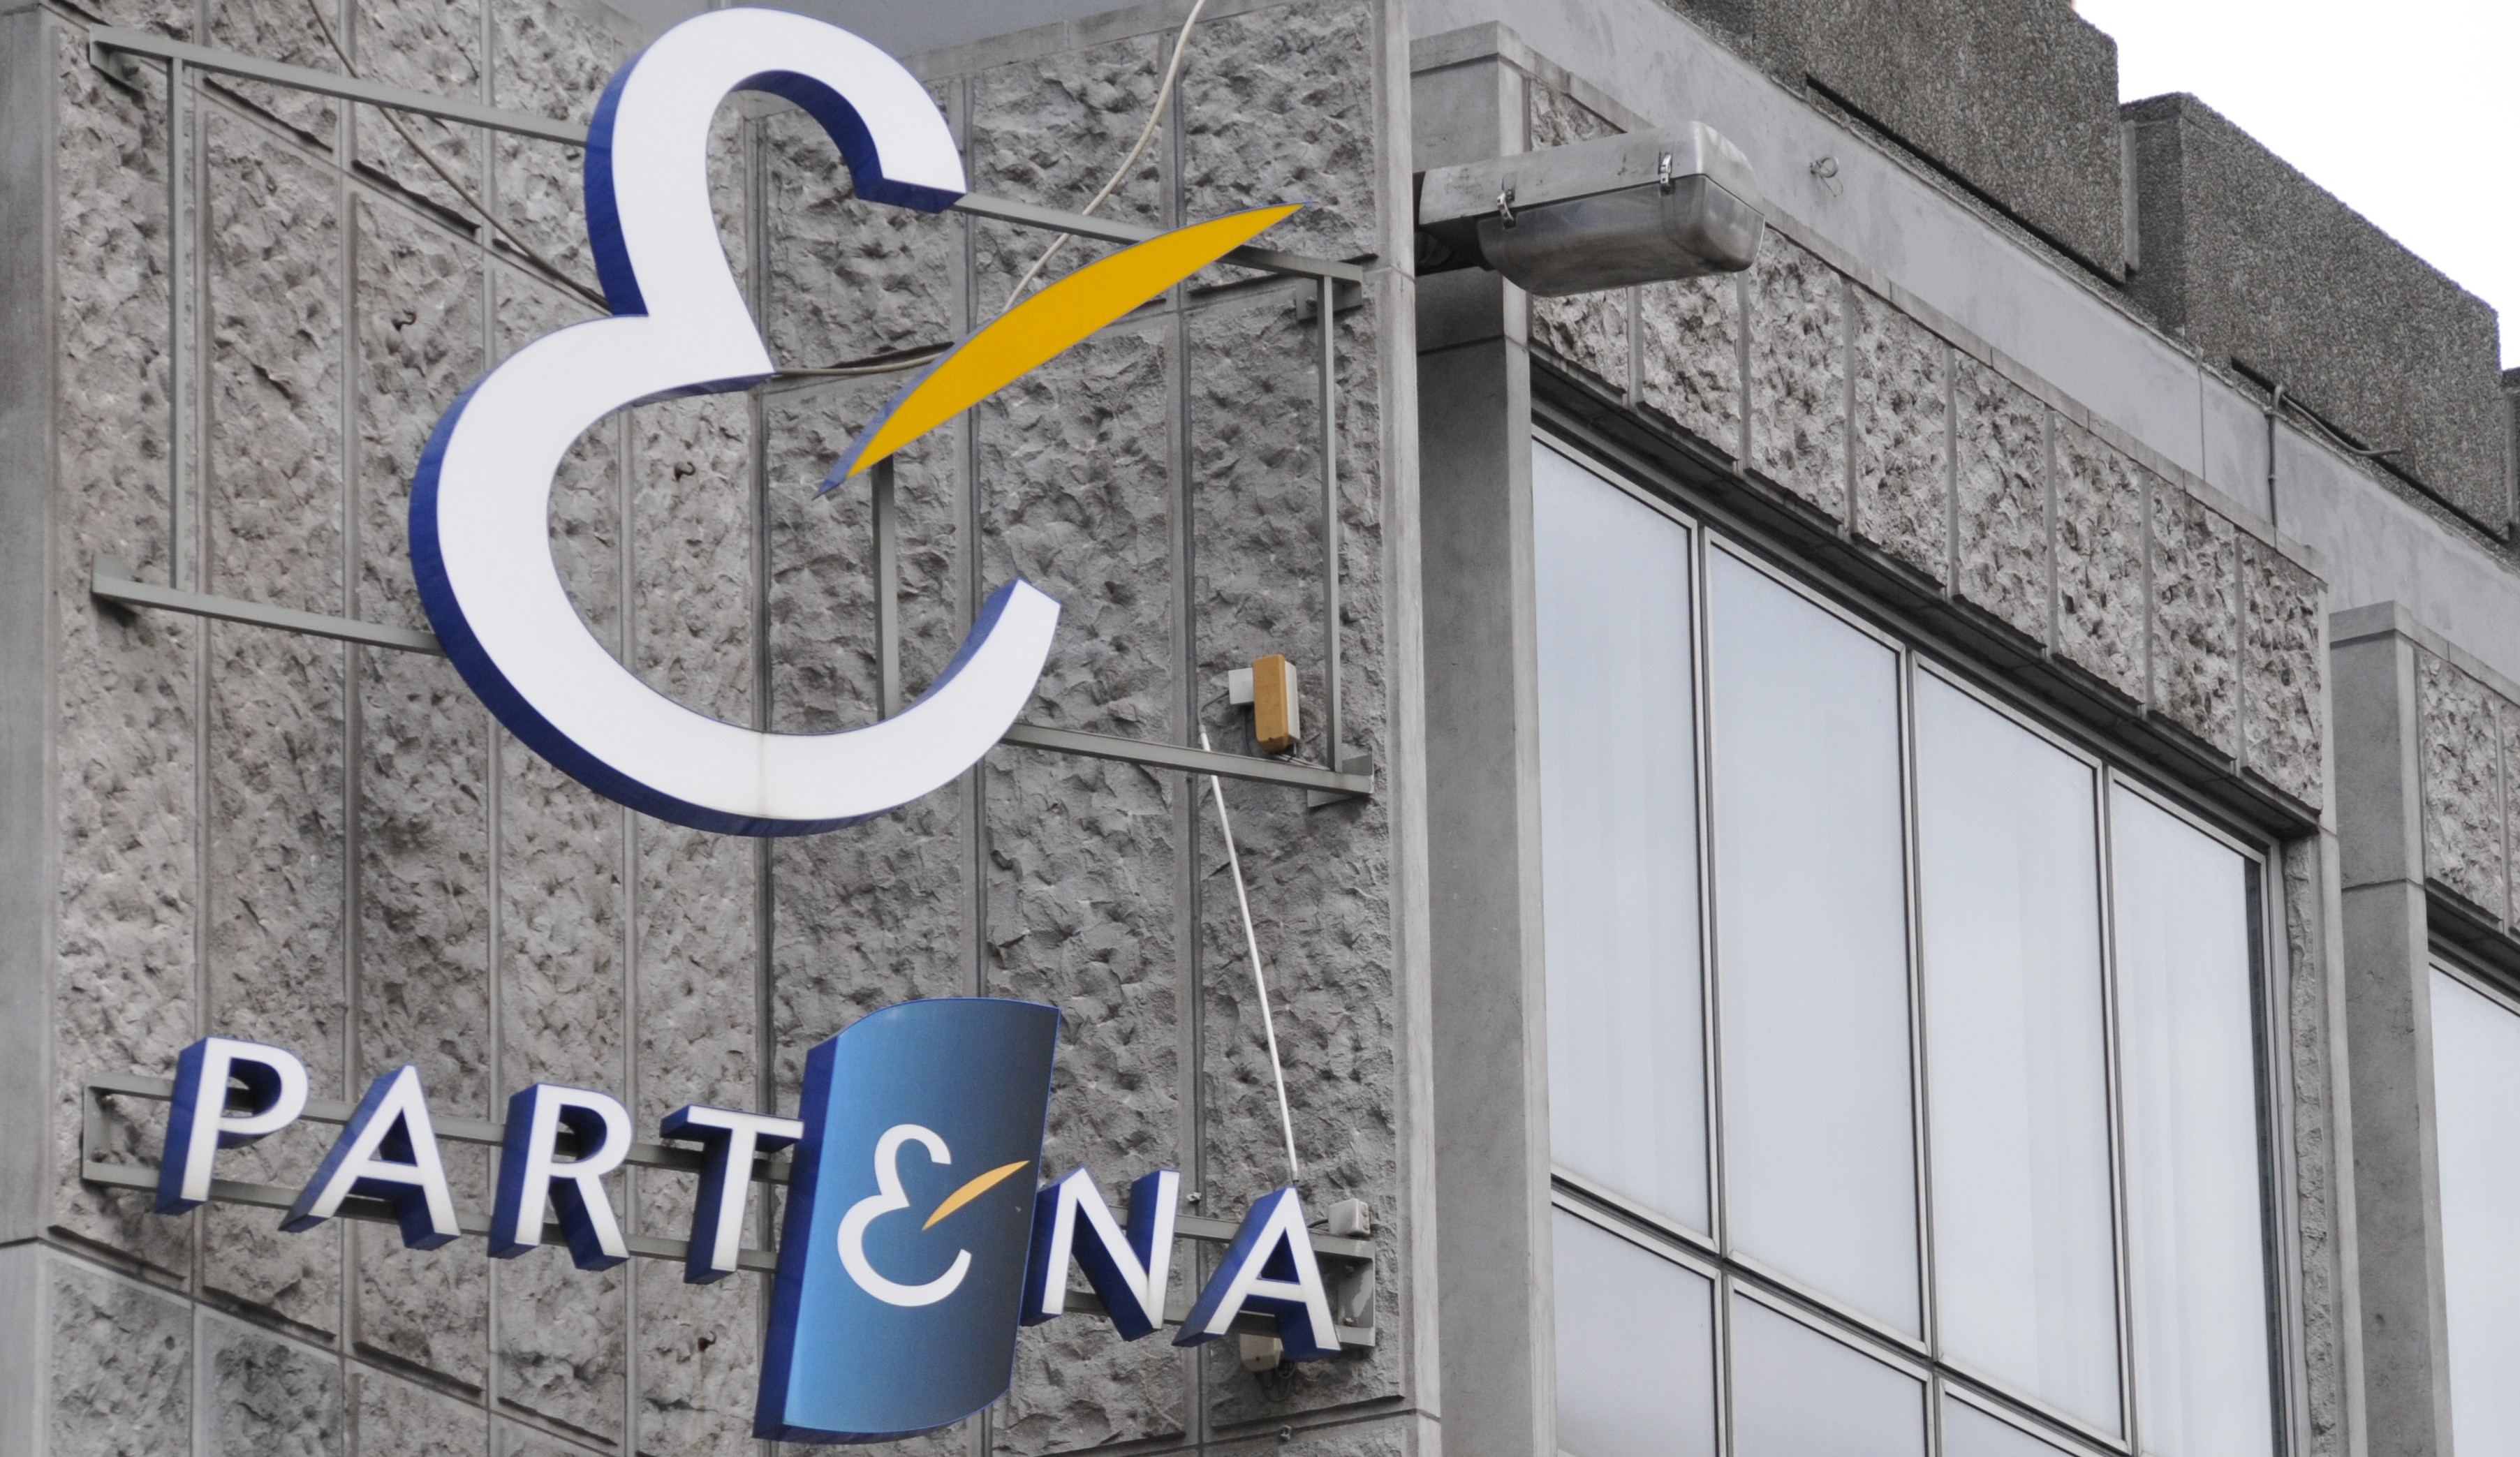 20120531 - BRUSSELS, BELGIUM: Illustration picture shows the logo of Partena during a press conference regarding the merger of service providers for entrepreneurs Partena and HDP, Thursday 31 May 2012 in Brussels. BELGA PHOTO THOMAS THIELEMANS